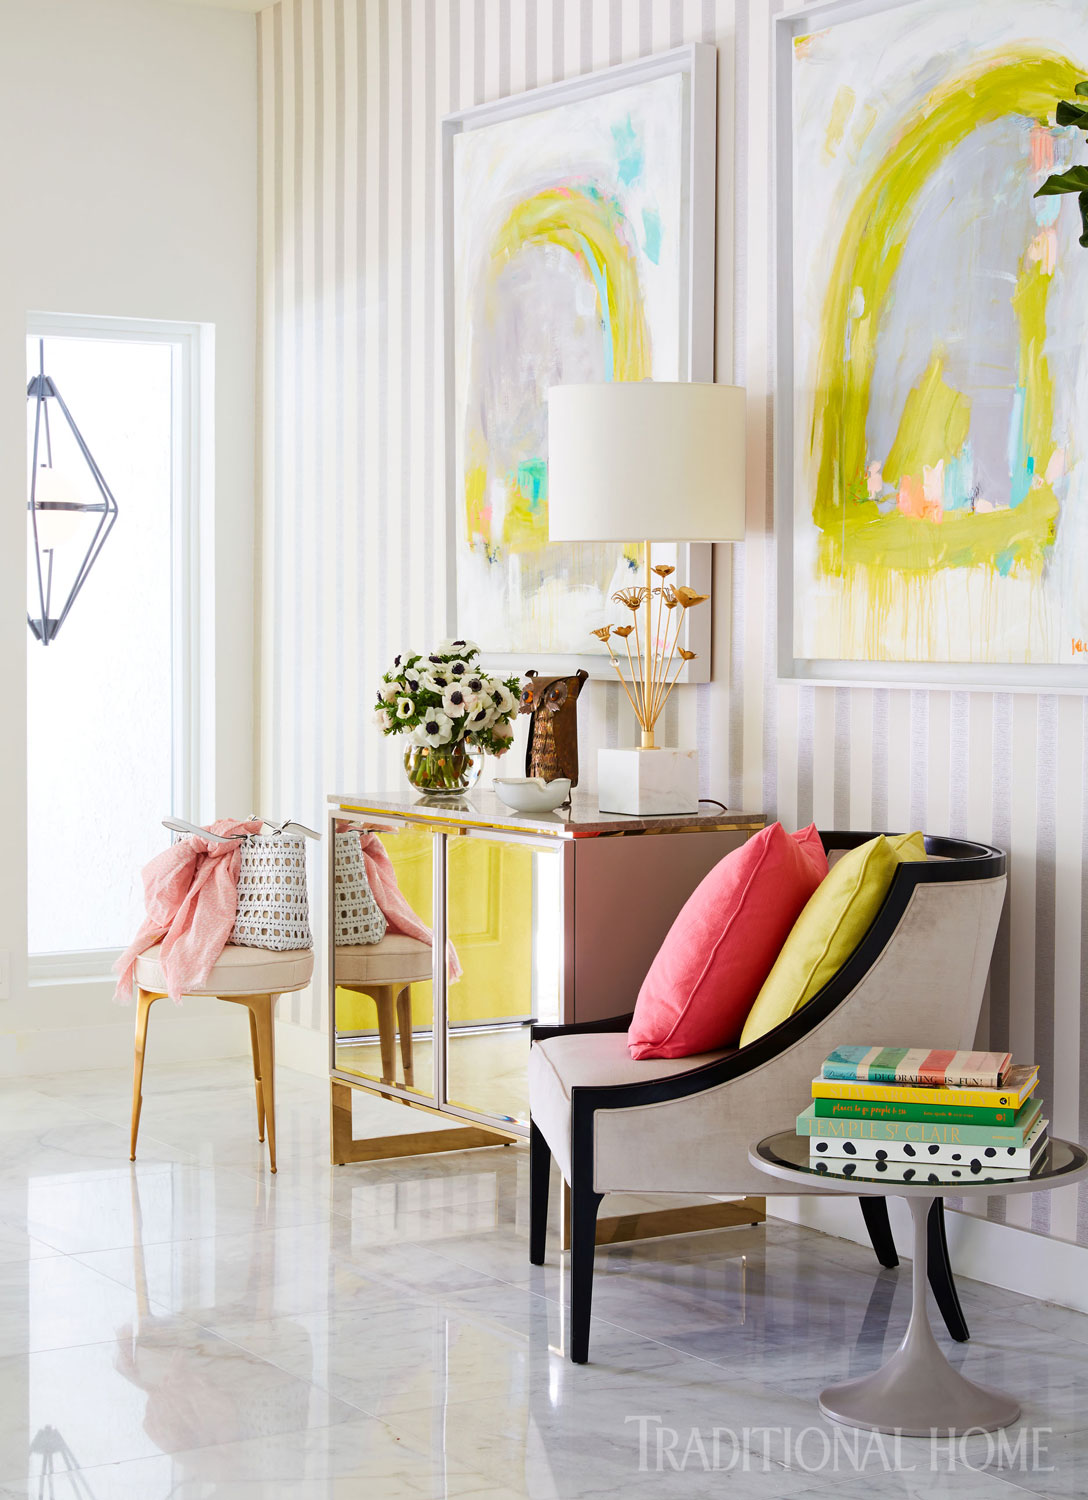 showhouse trends-modern design-2017 christopher kennedy compound modernized showhouse-foyer-kate spade-debs camplinlorettajwillisshowhouse design, home trendsshowhouse design, home trendsshowhouse design, home trendsshowhouse design, home trendsshowhouse design, home trendsshowhouse design, home trendsshowhouse design, home trendsshowhouse design, home trends